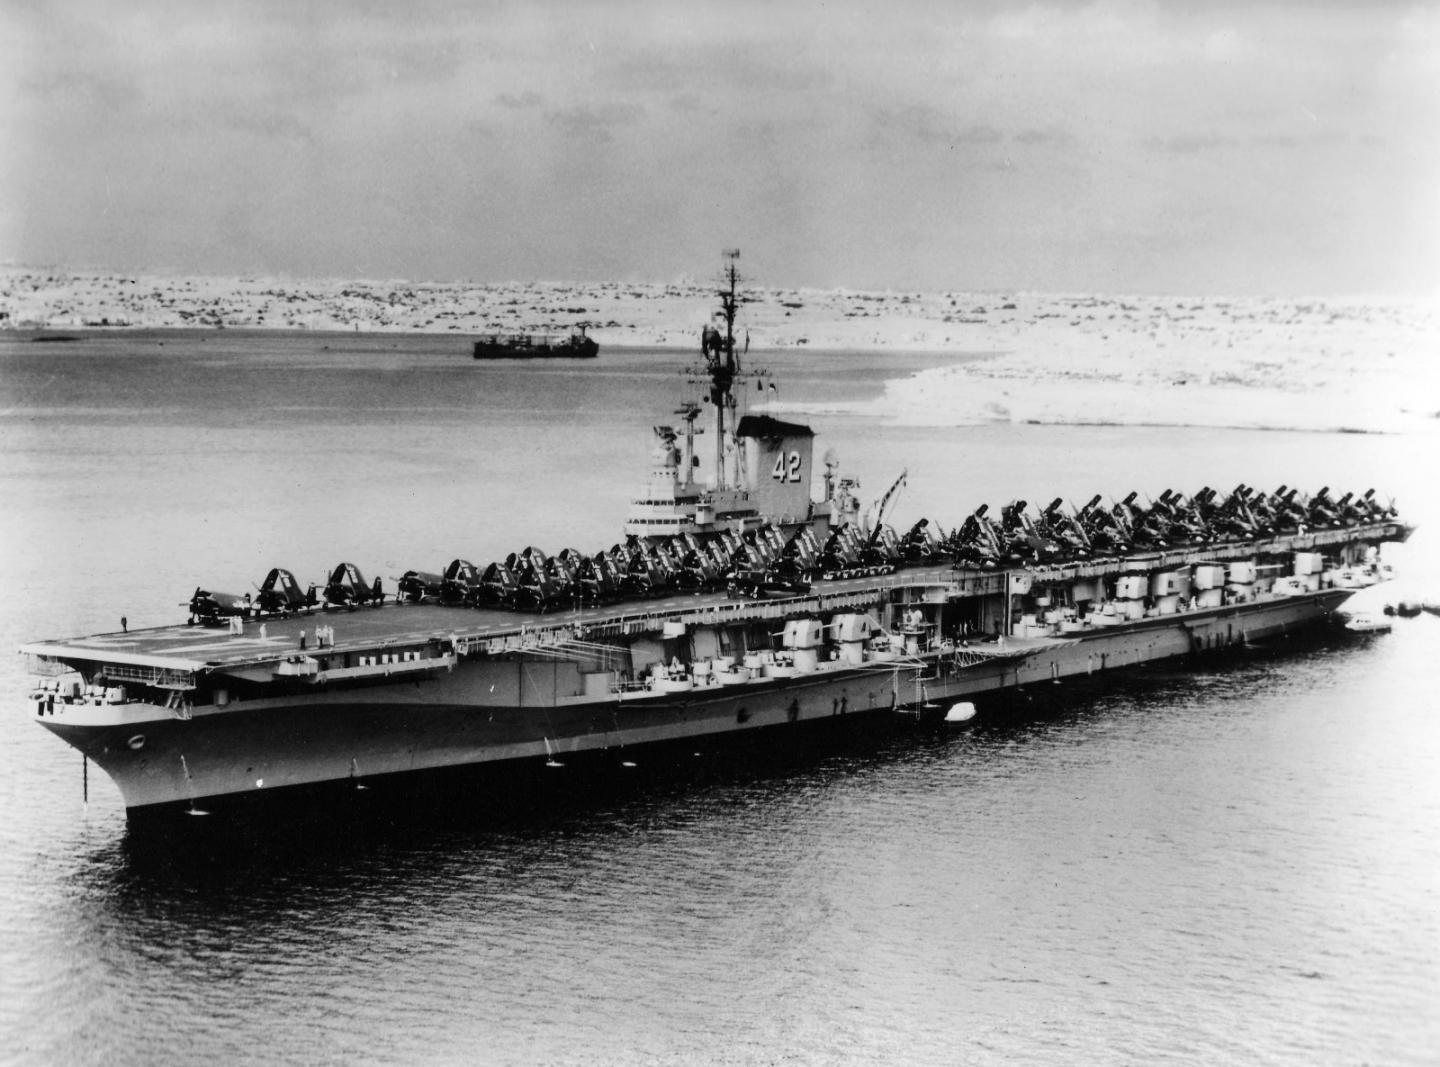 The U.S. Navy Loved the Midway-Class Aircraft Carrier. This Is Their Story